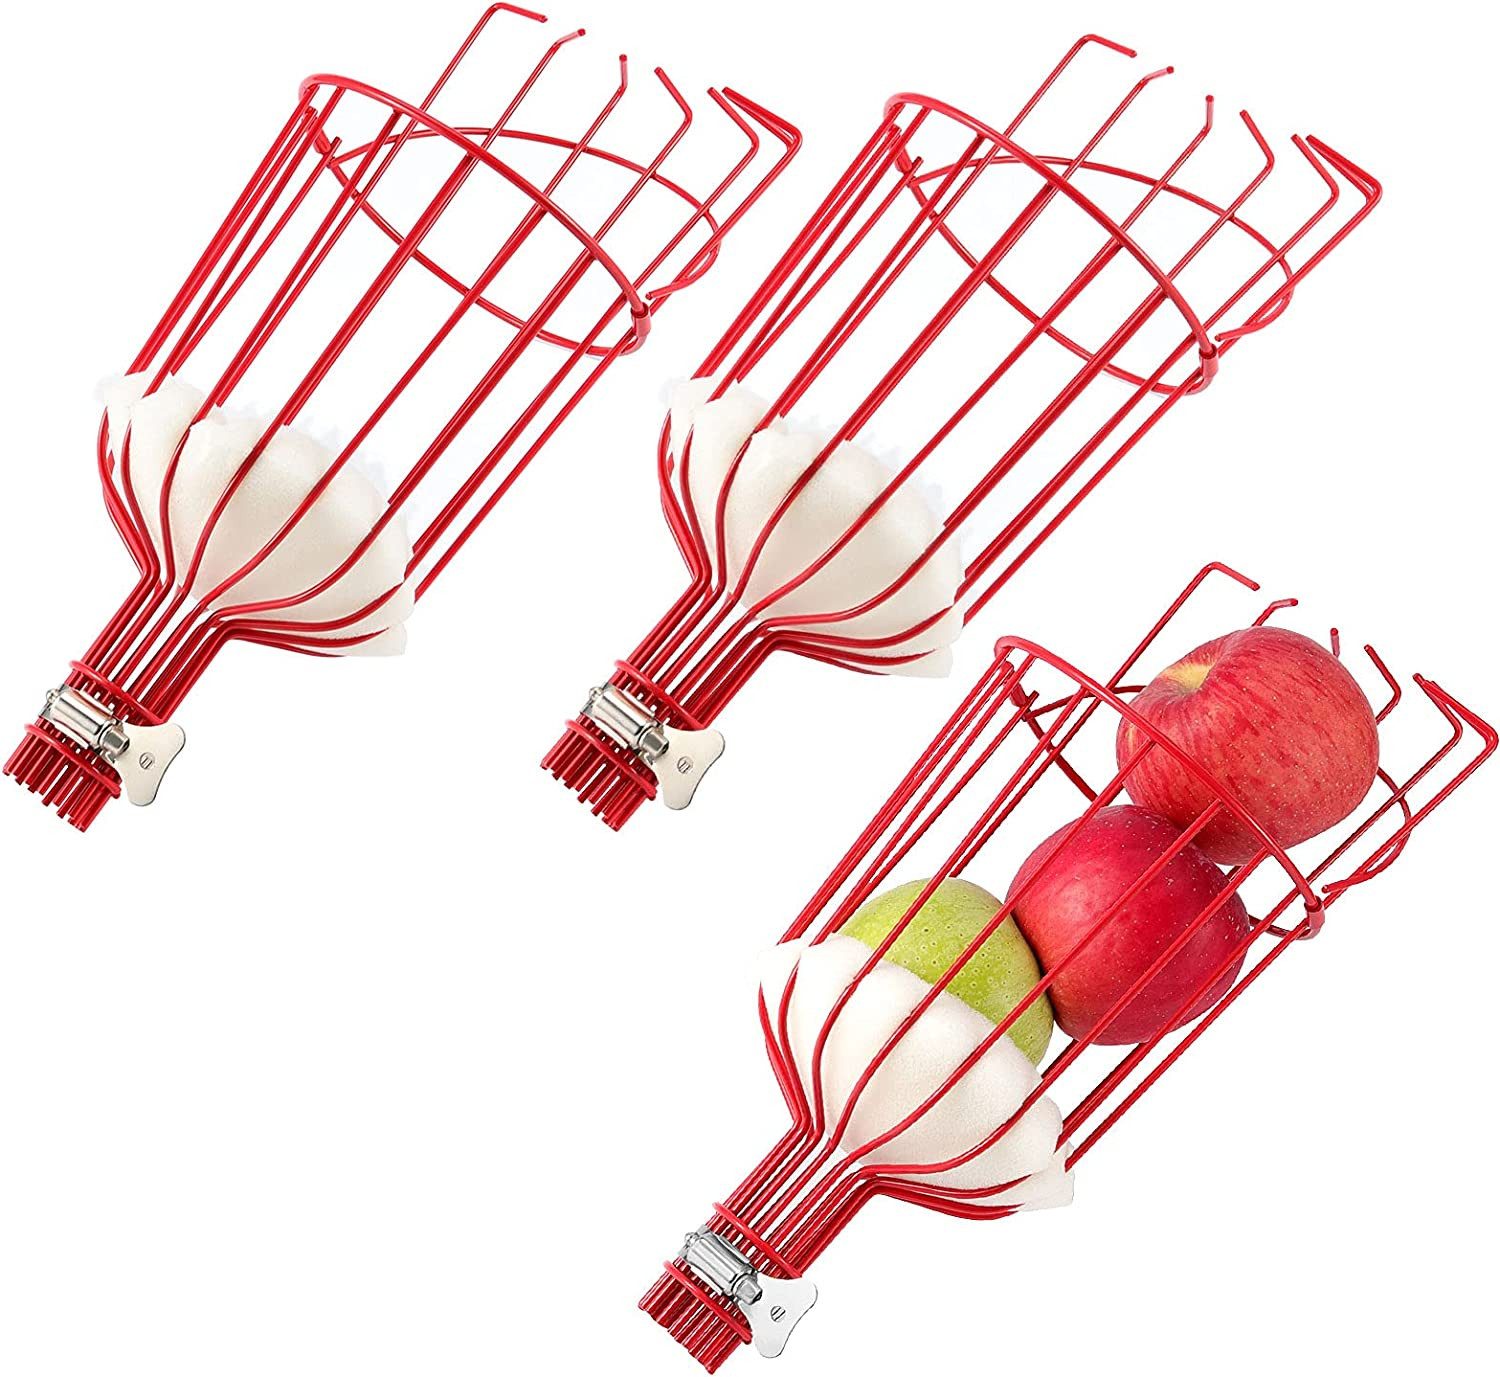 ZOENHOU 3 Pack 13 x 5.7 Inch Fruit Picker Head, Fruit Picker Tool, Fruit Picker Head Harvest Basket with Foam Cushion to Prevent Bruising for Picking Fruits